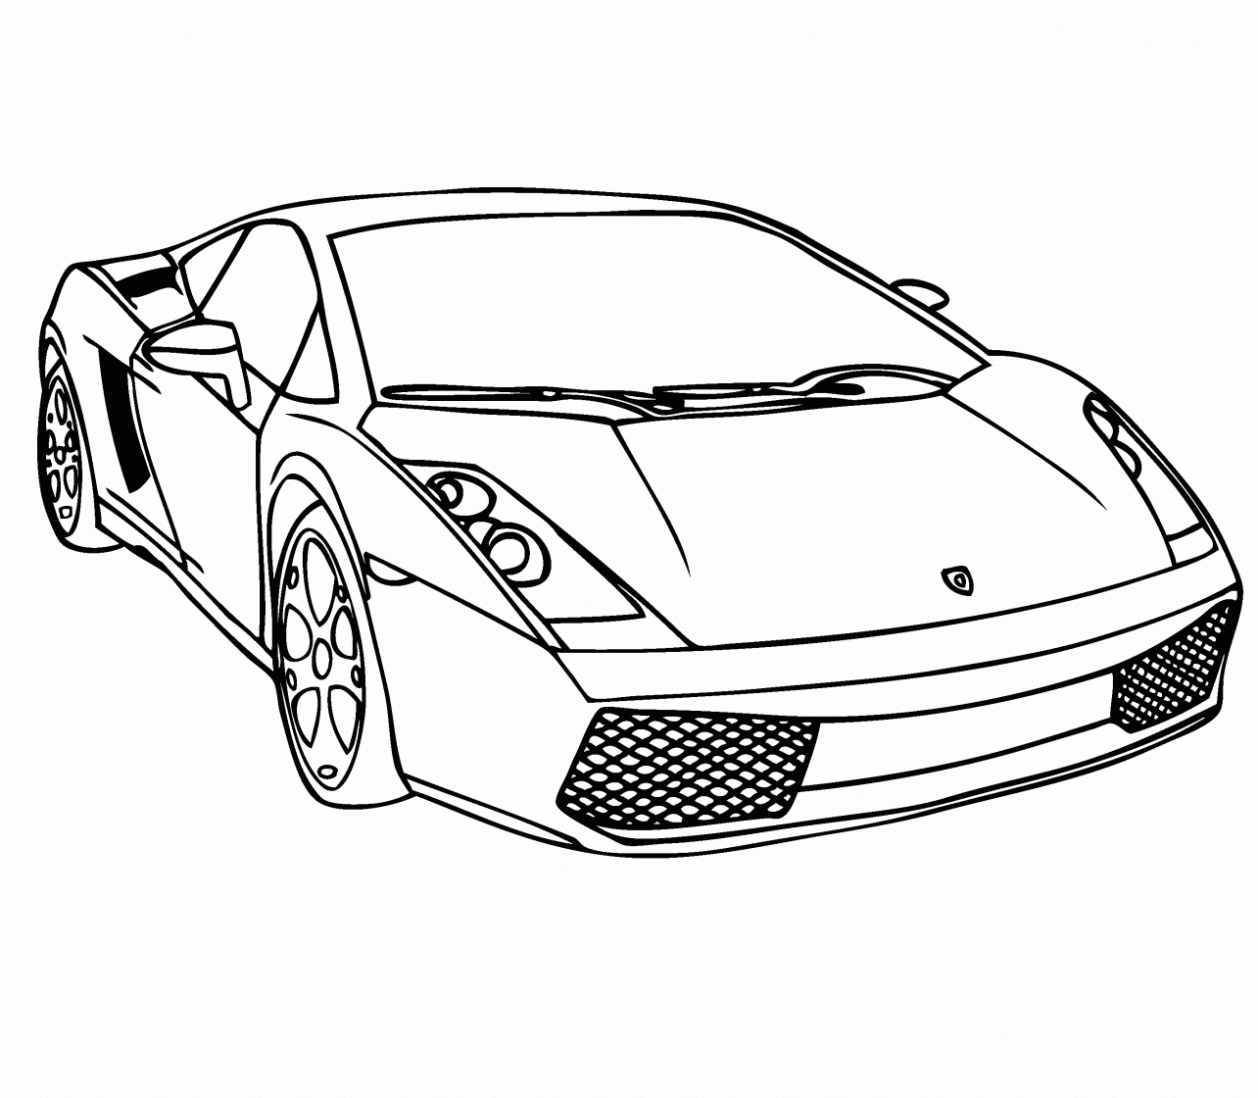 traceable car pictures convertible car coloring page a free boys coloring printable pictures car traceable